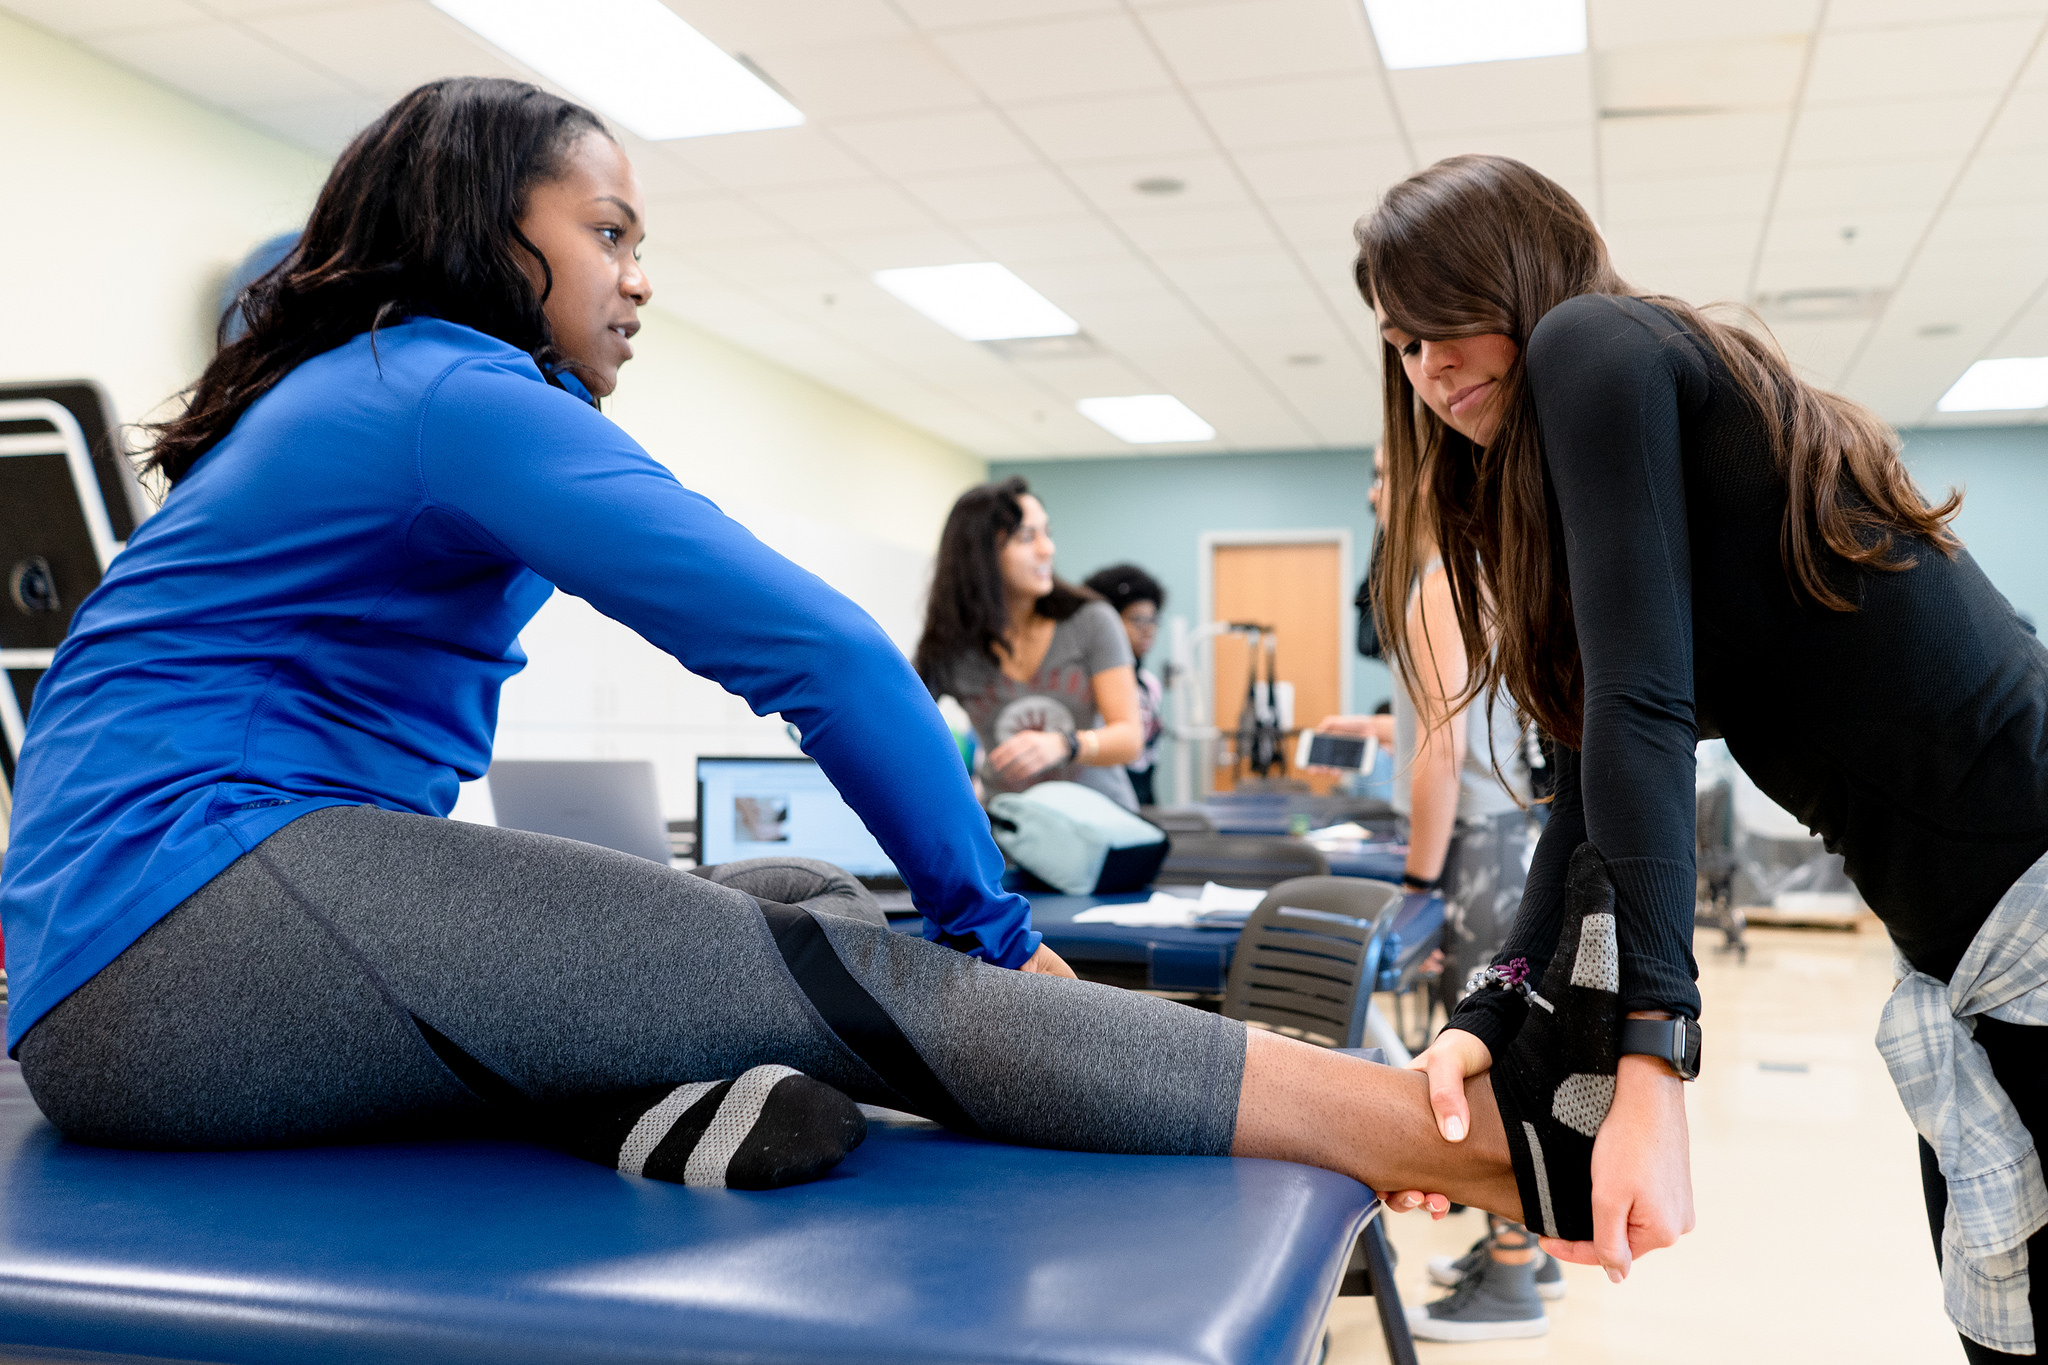 physical therapy doctor fiu academics nicole florida university health occupational college nursing international pt services sciences cnhs edu